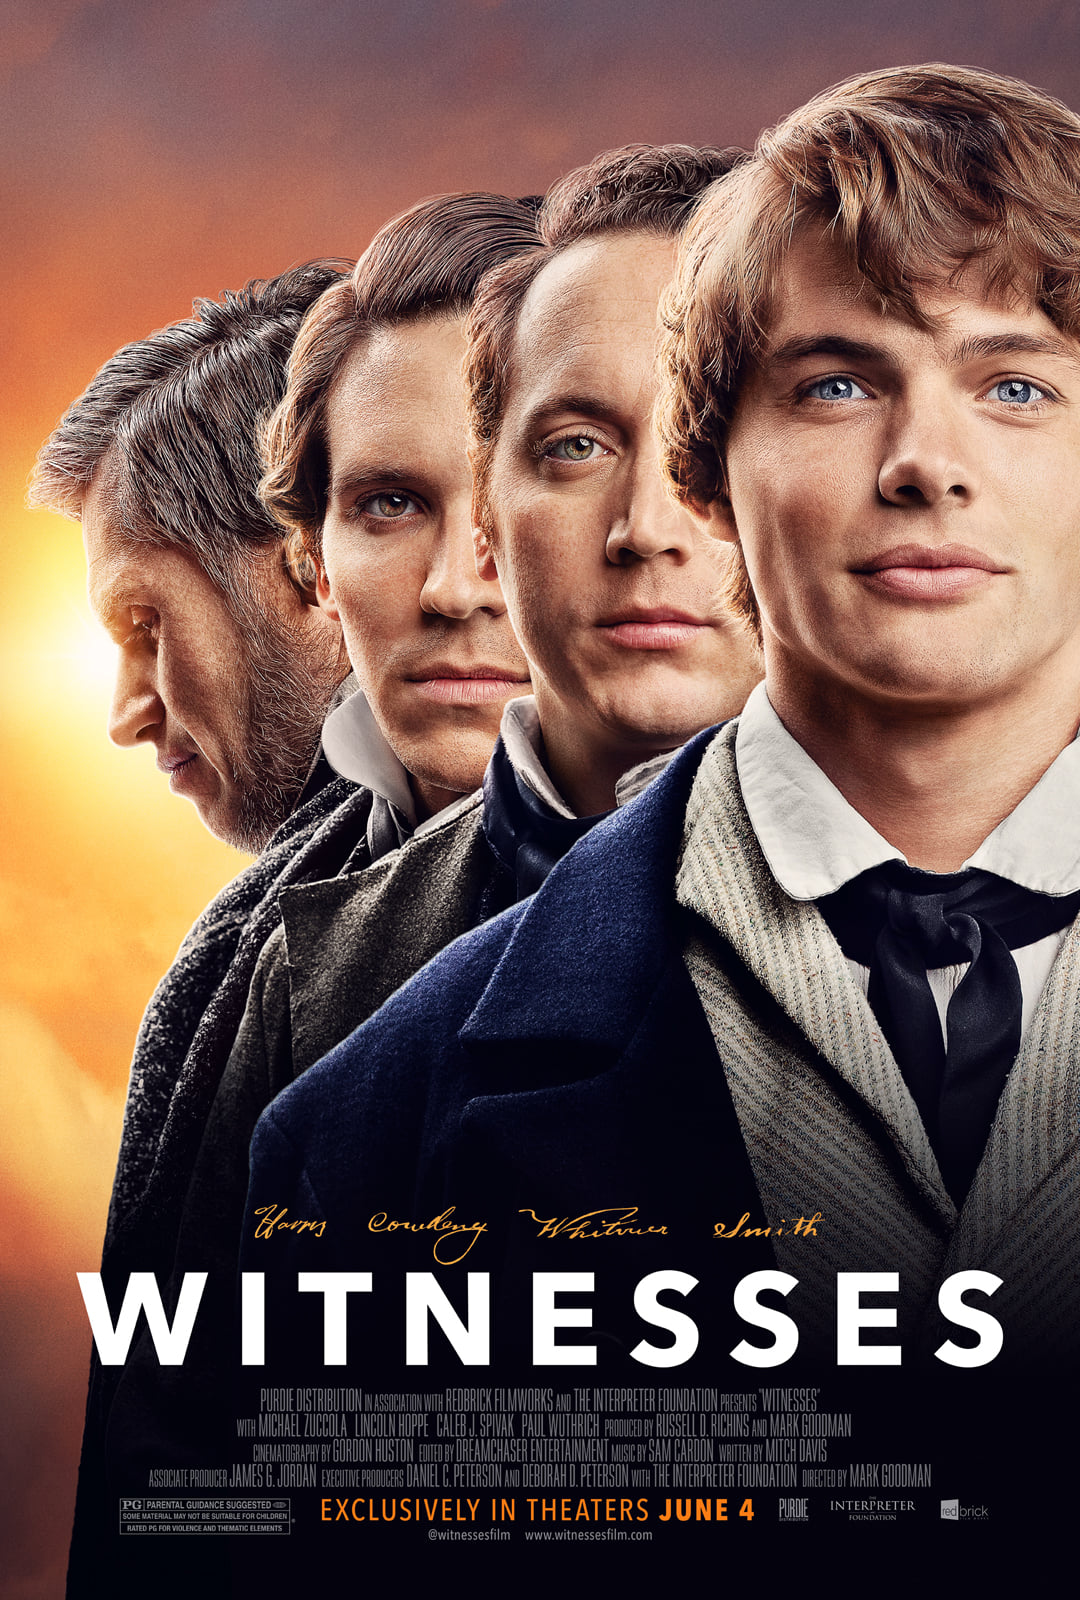 Witnesses, the poster